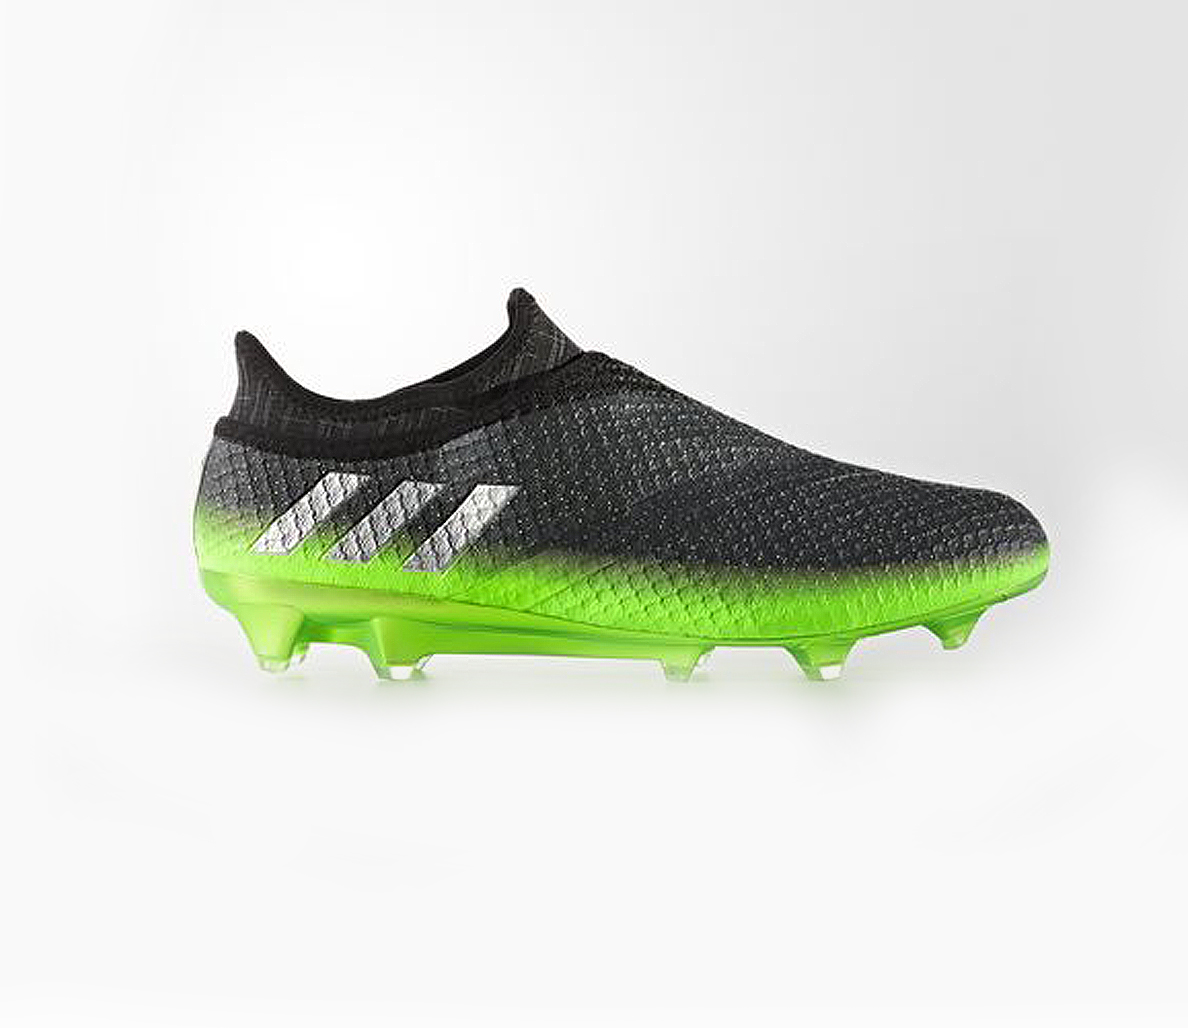 Messi Pureagility Firm Ground Cleats, Adidas